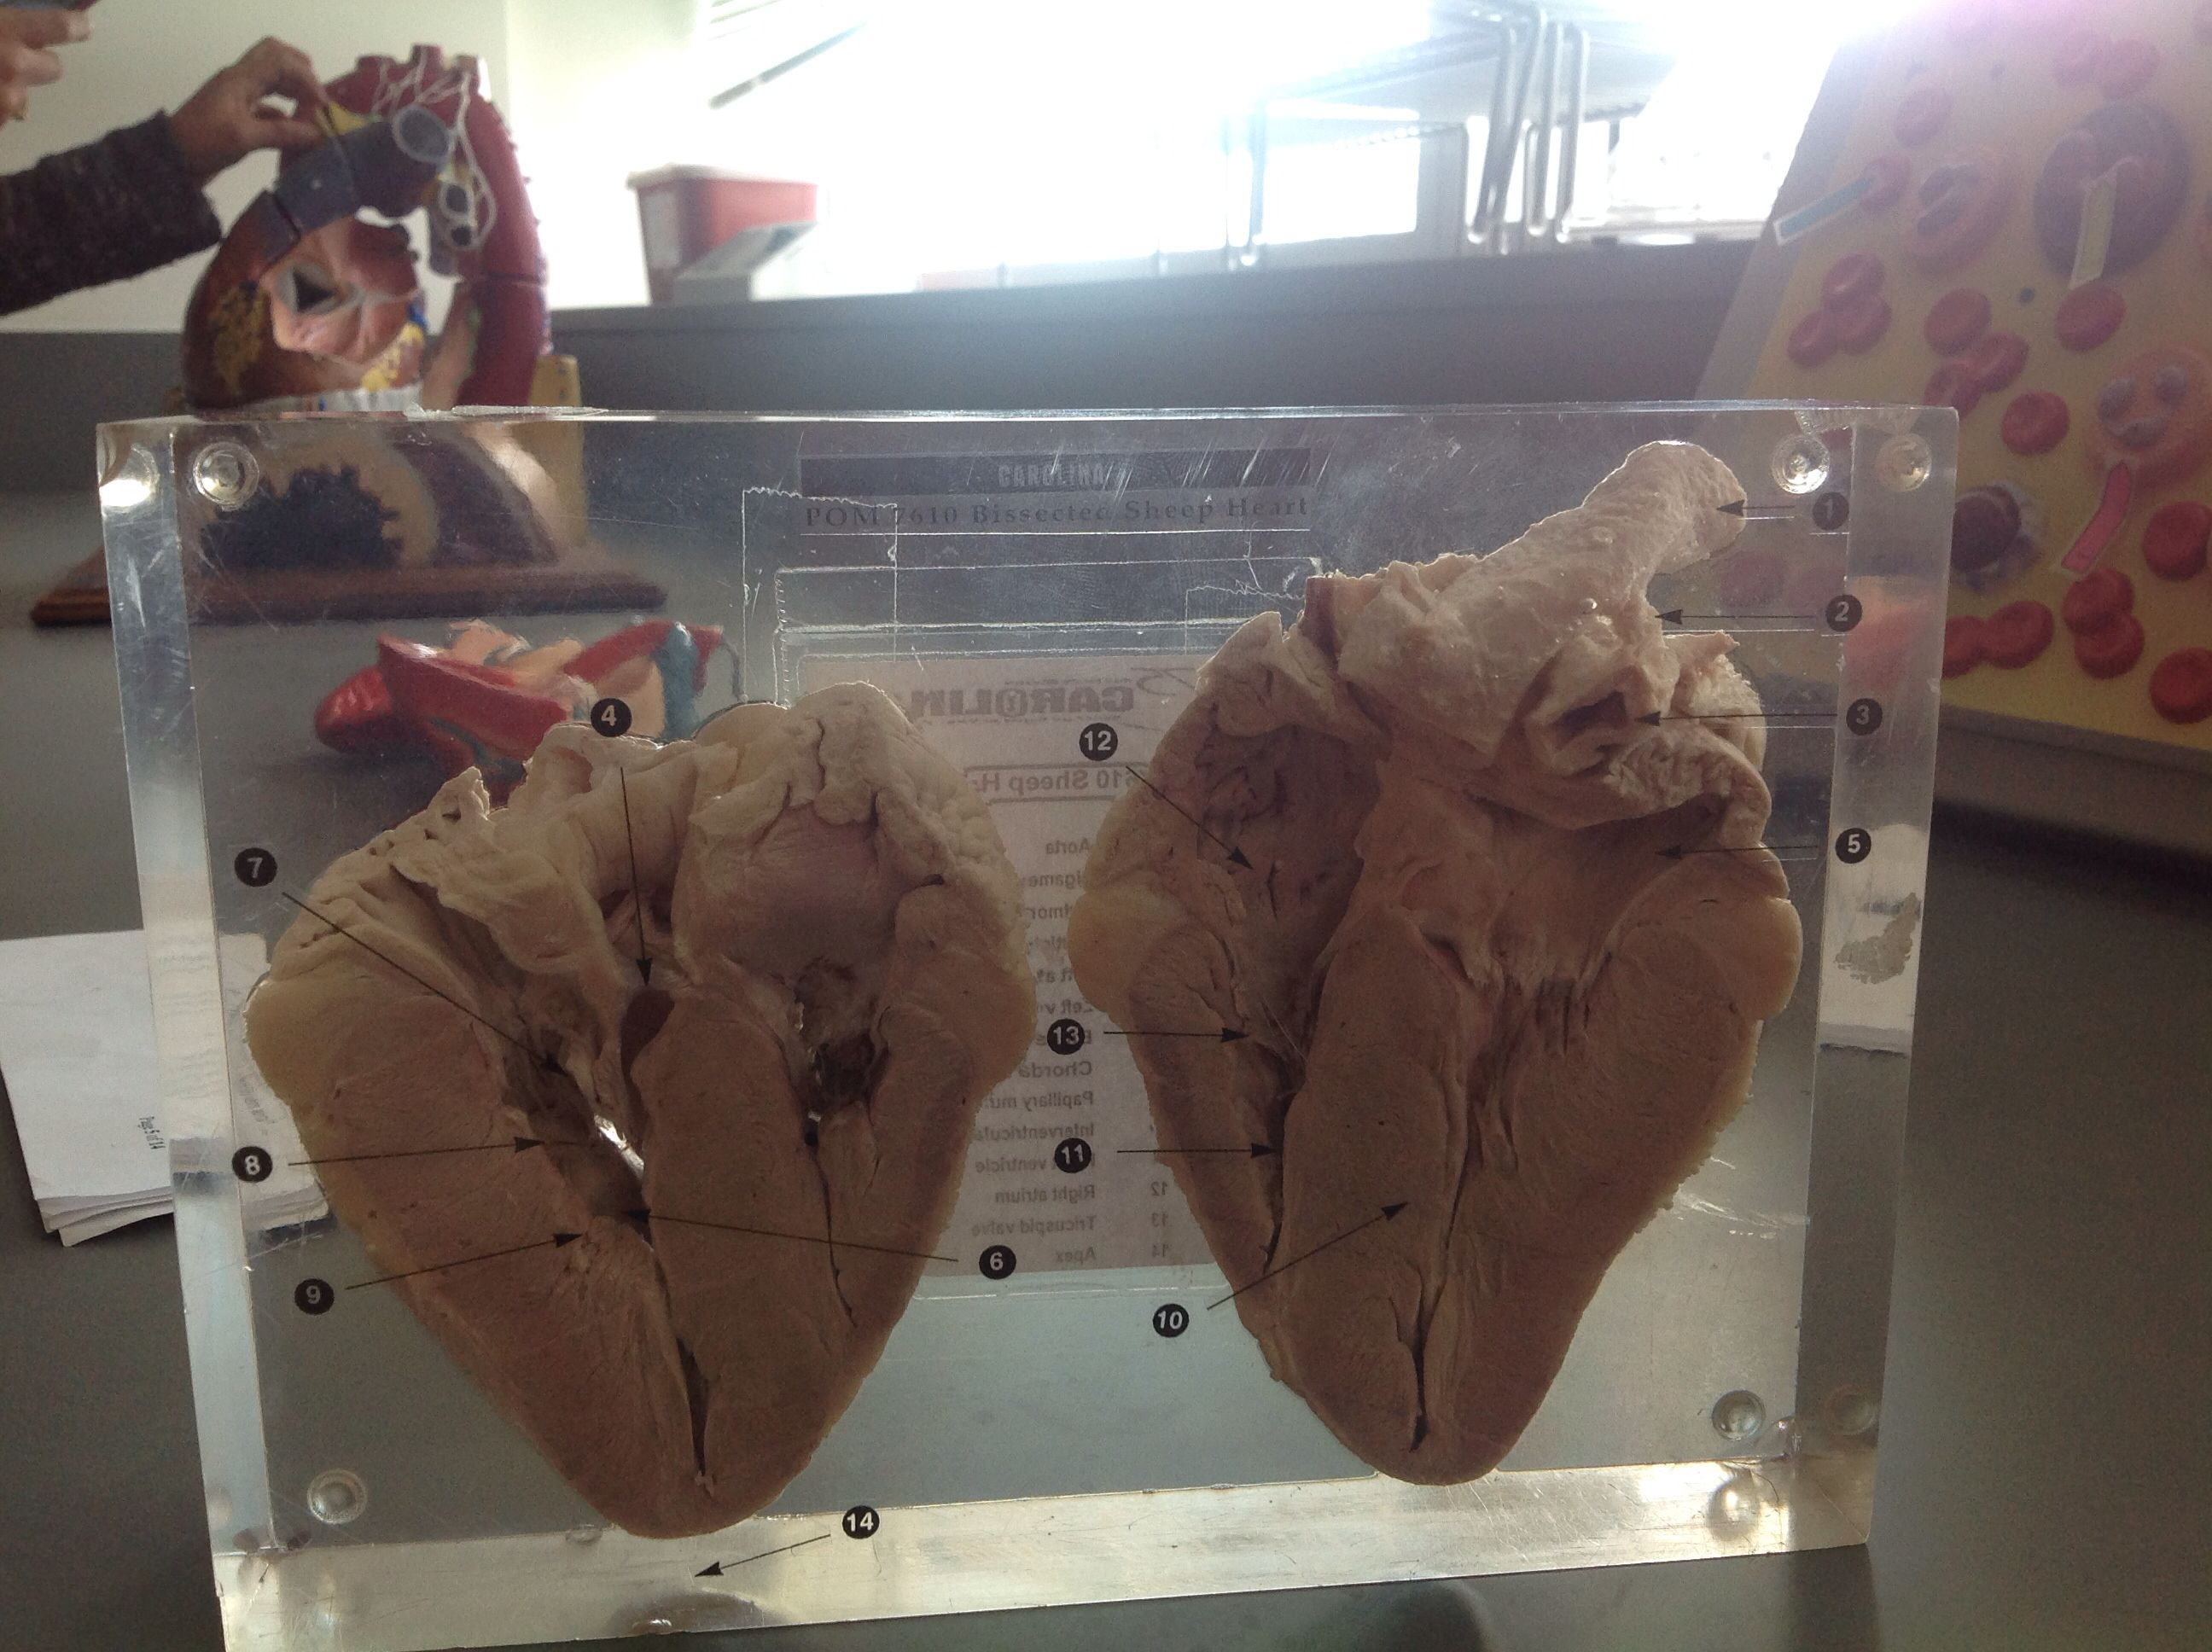 Sheep heart | Anatomy and physiology 2 pictures | Pinterest